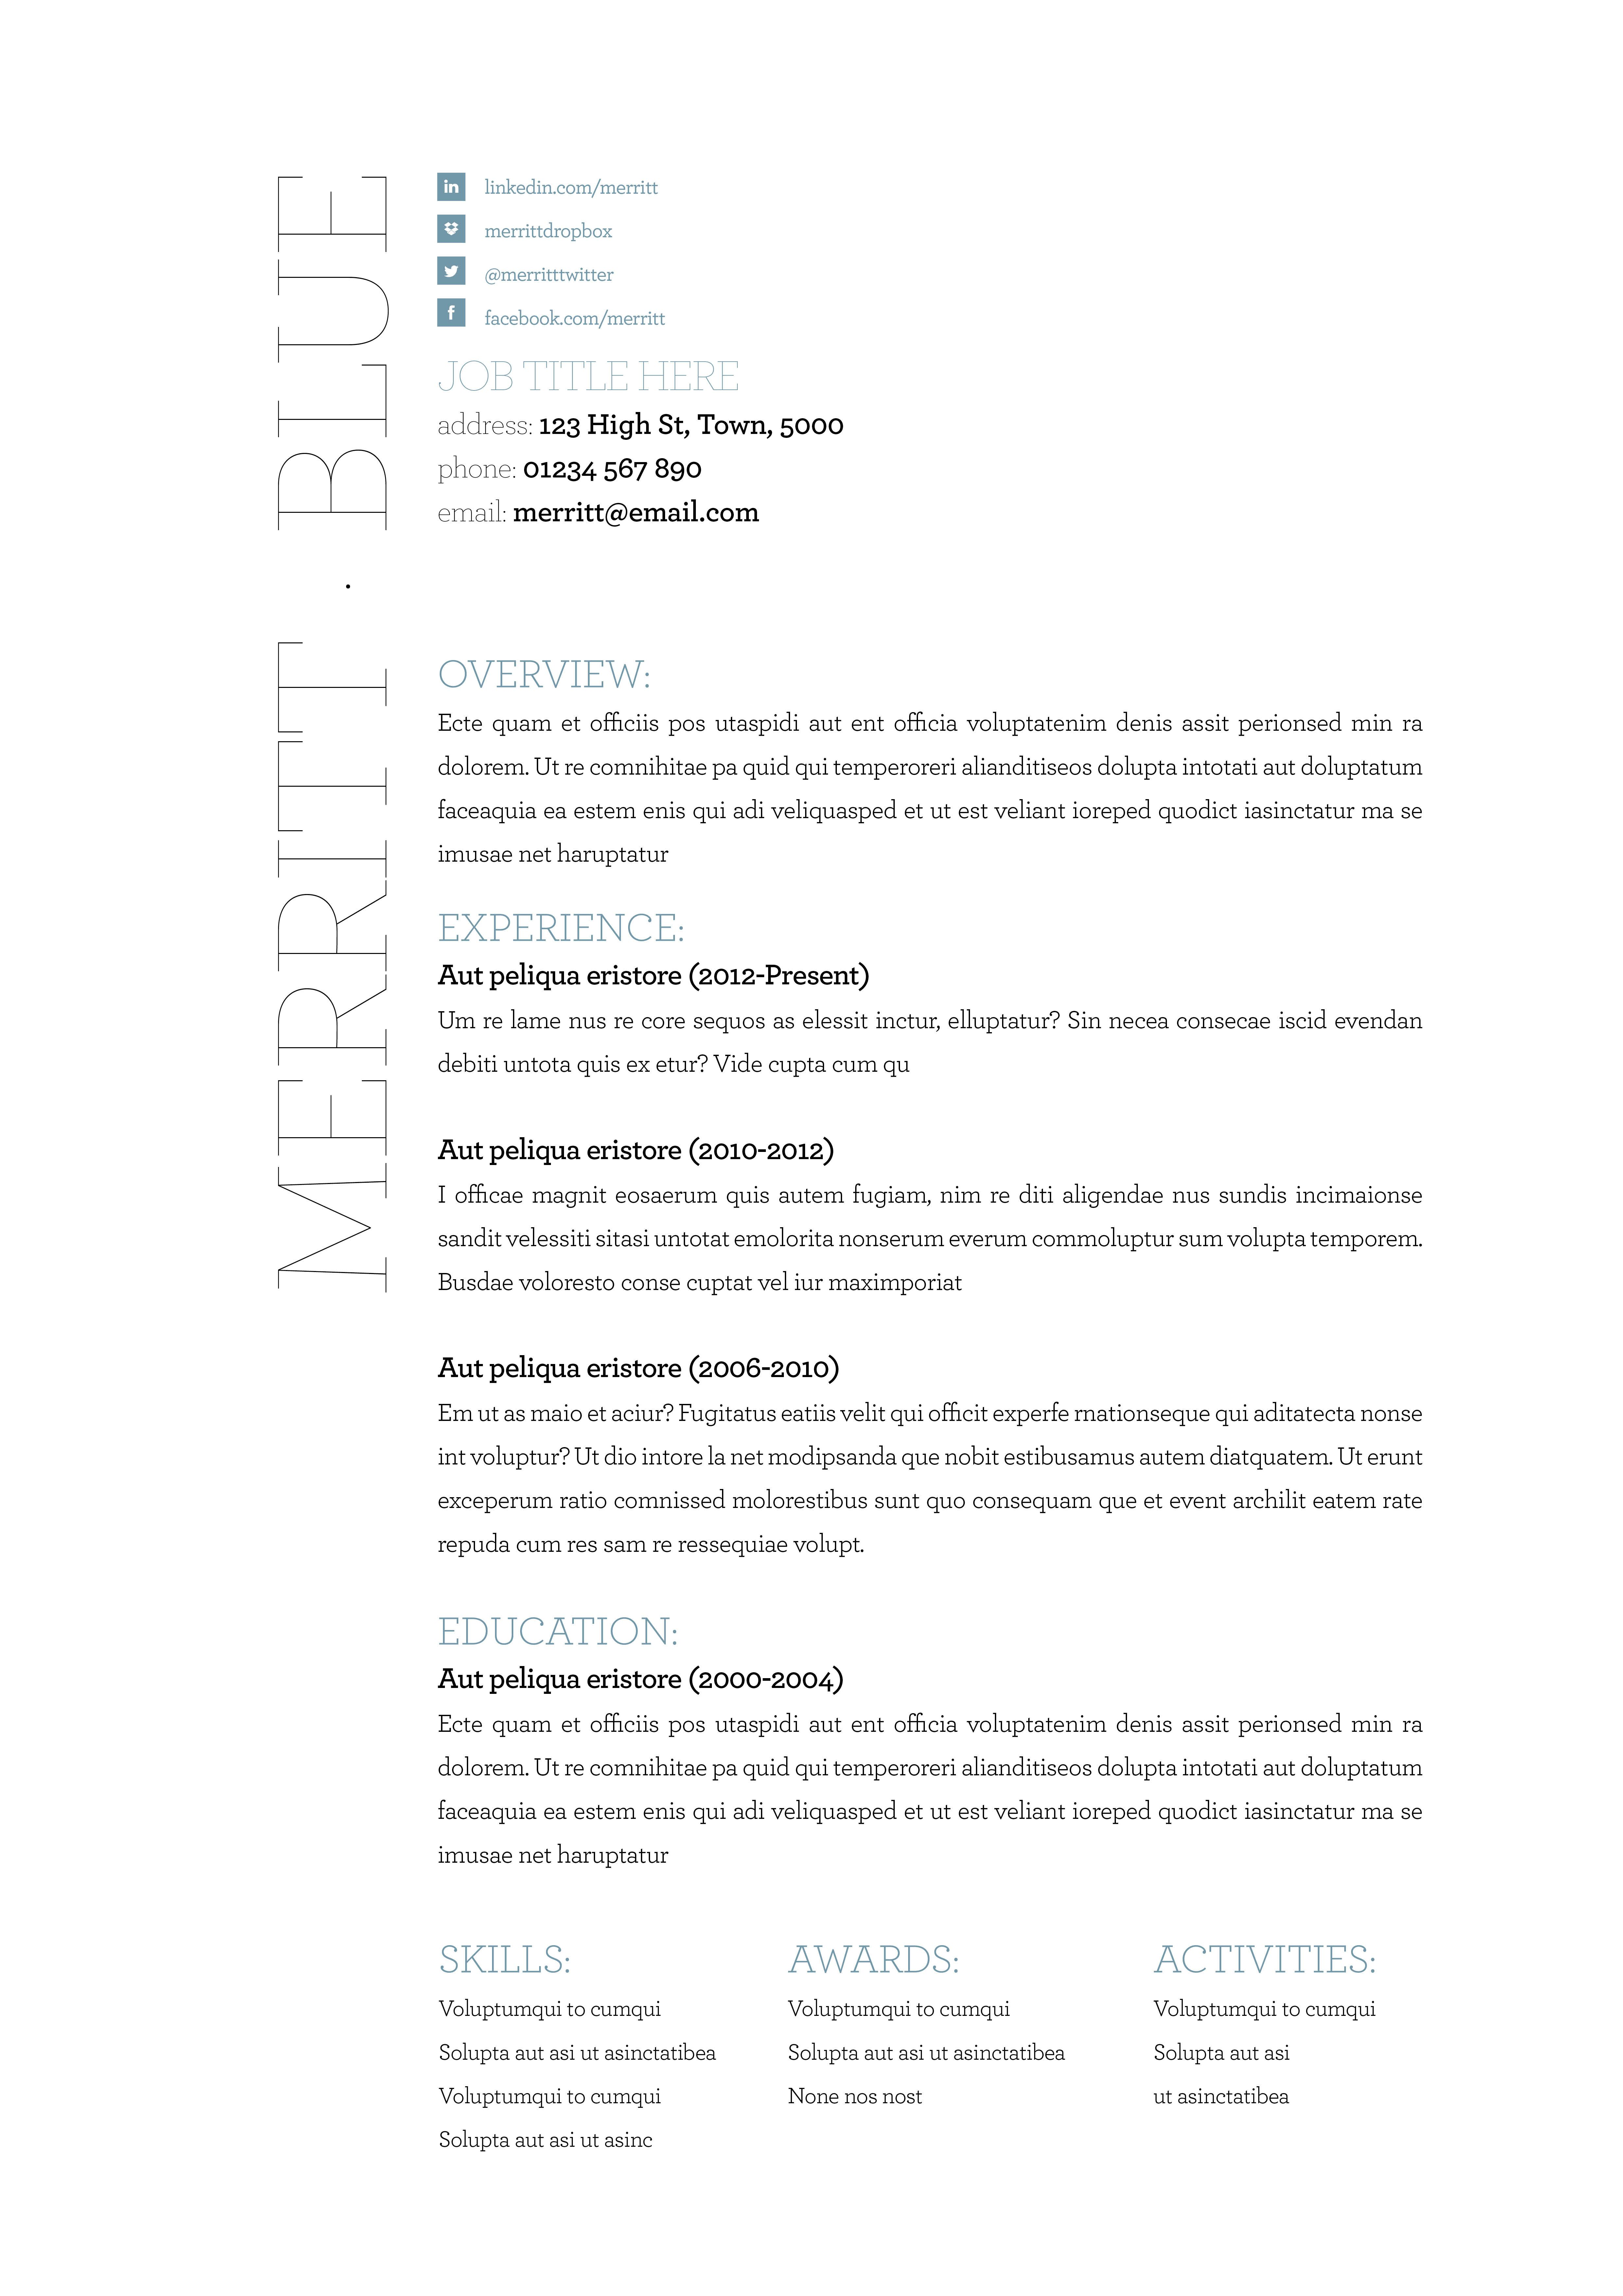 Our Merritt resume template. Available in blue, orange and